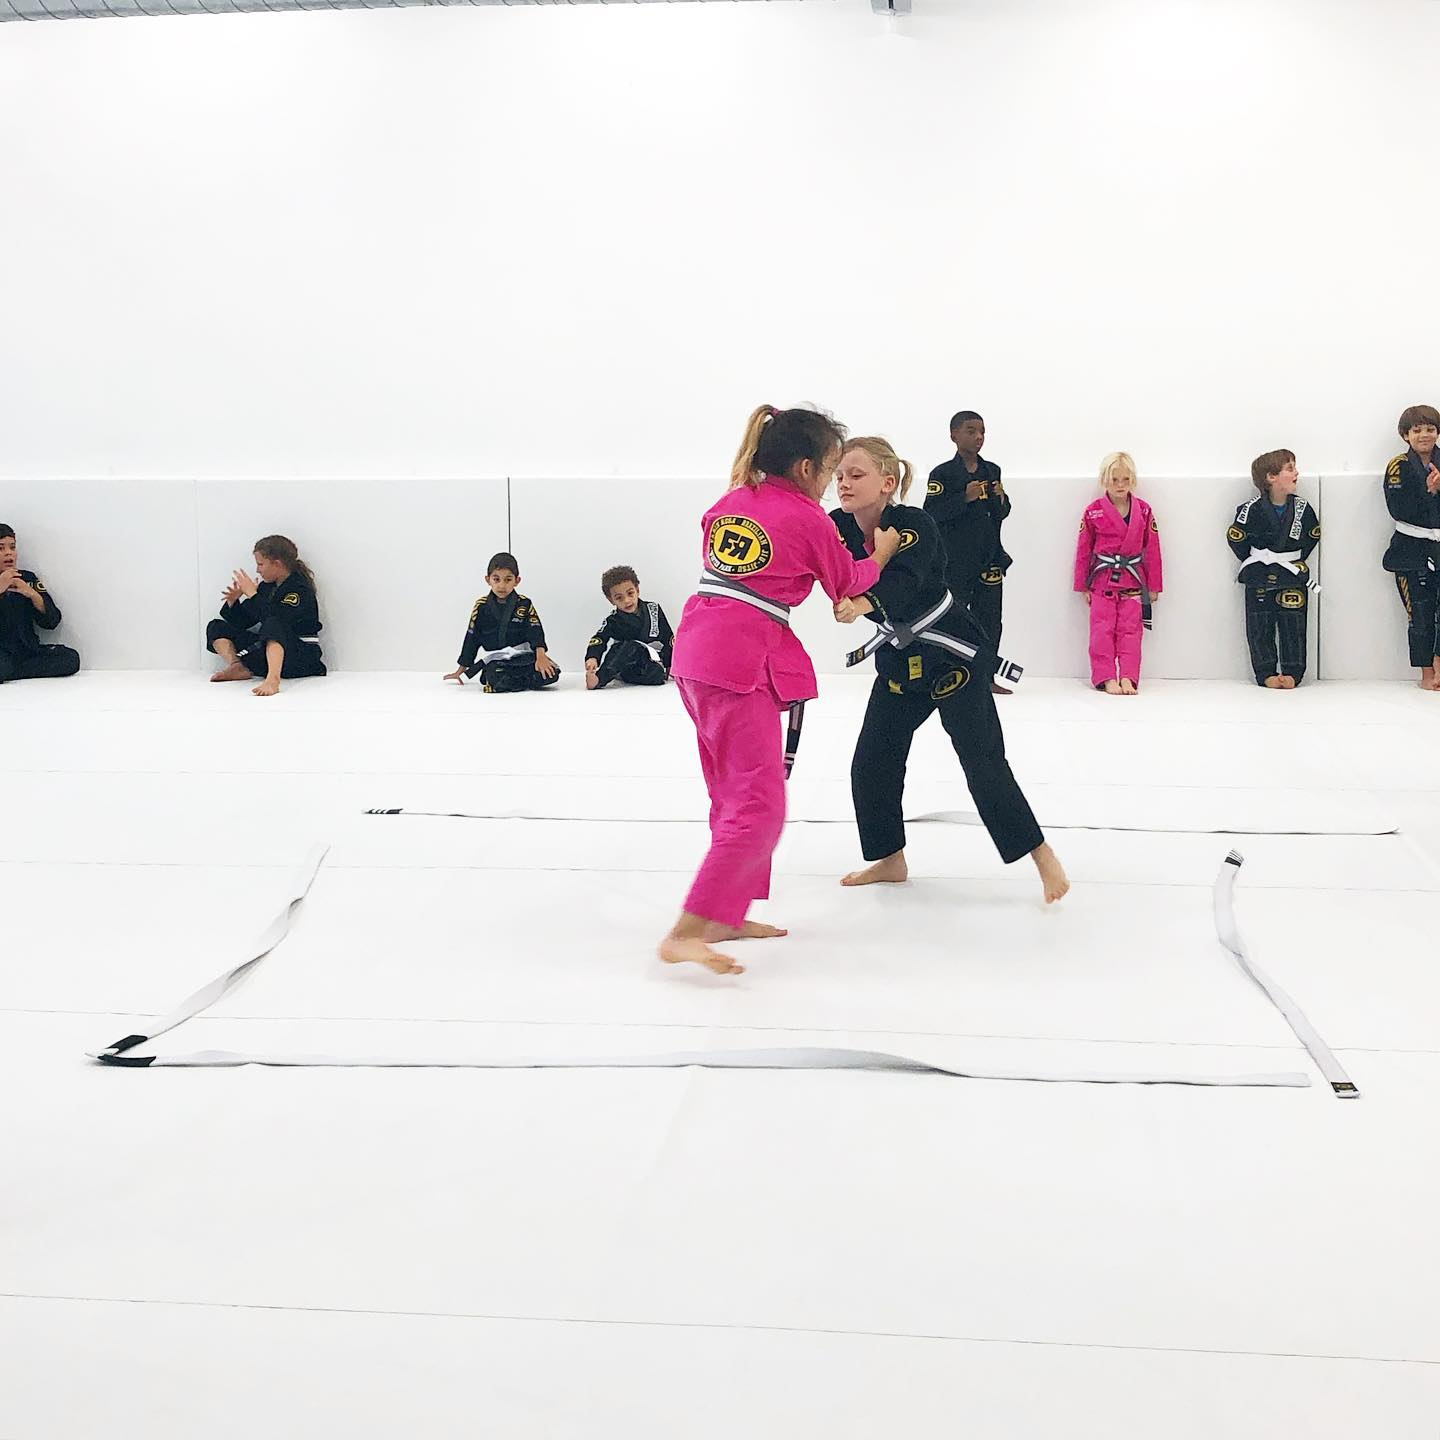 Winter Park BJJ Gallery Photo Number 3